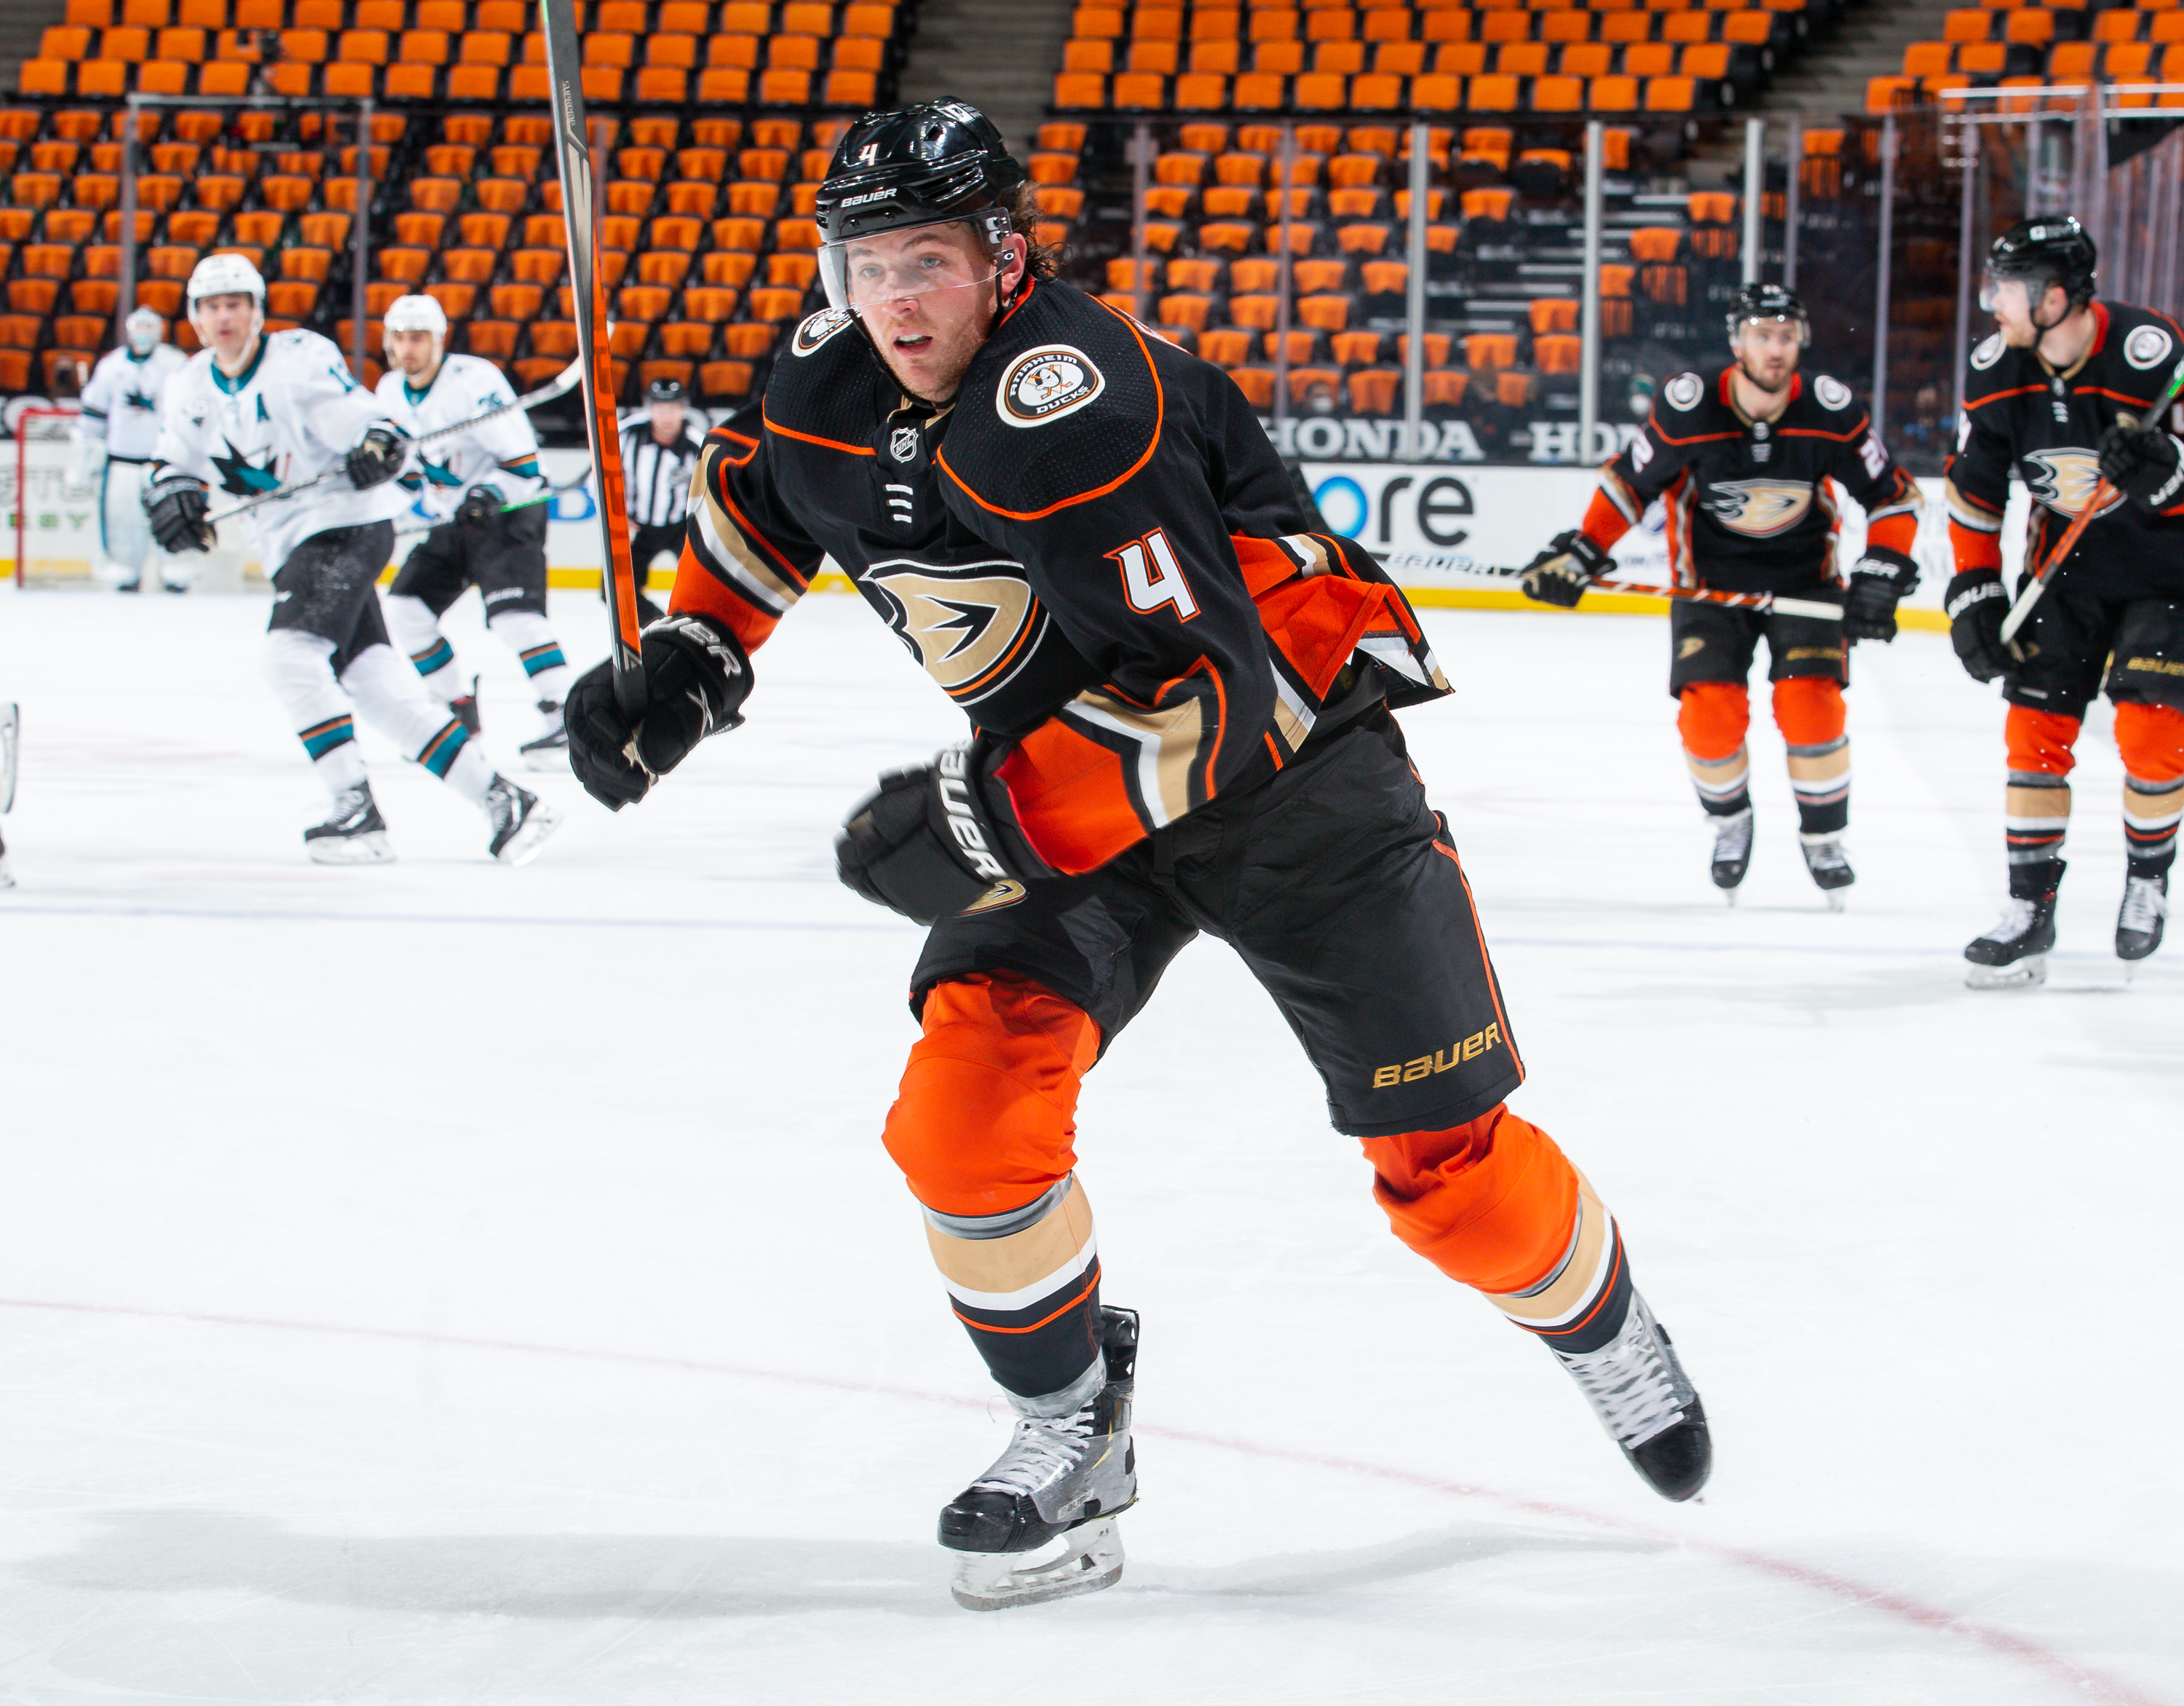 Cam Fowler #4 of the Anaheim Ducks races for the puck during the third period of the game against the San Jose Sharks at Honda Center on March 13, 2021 in Anaheim, California.